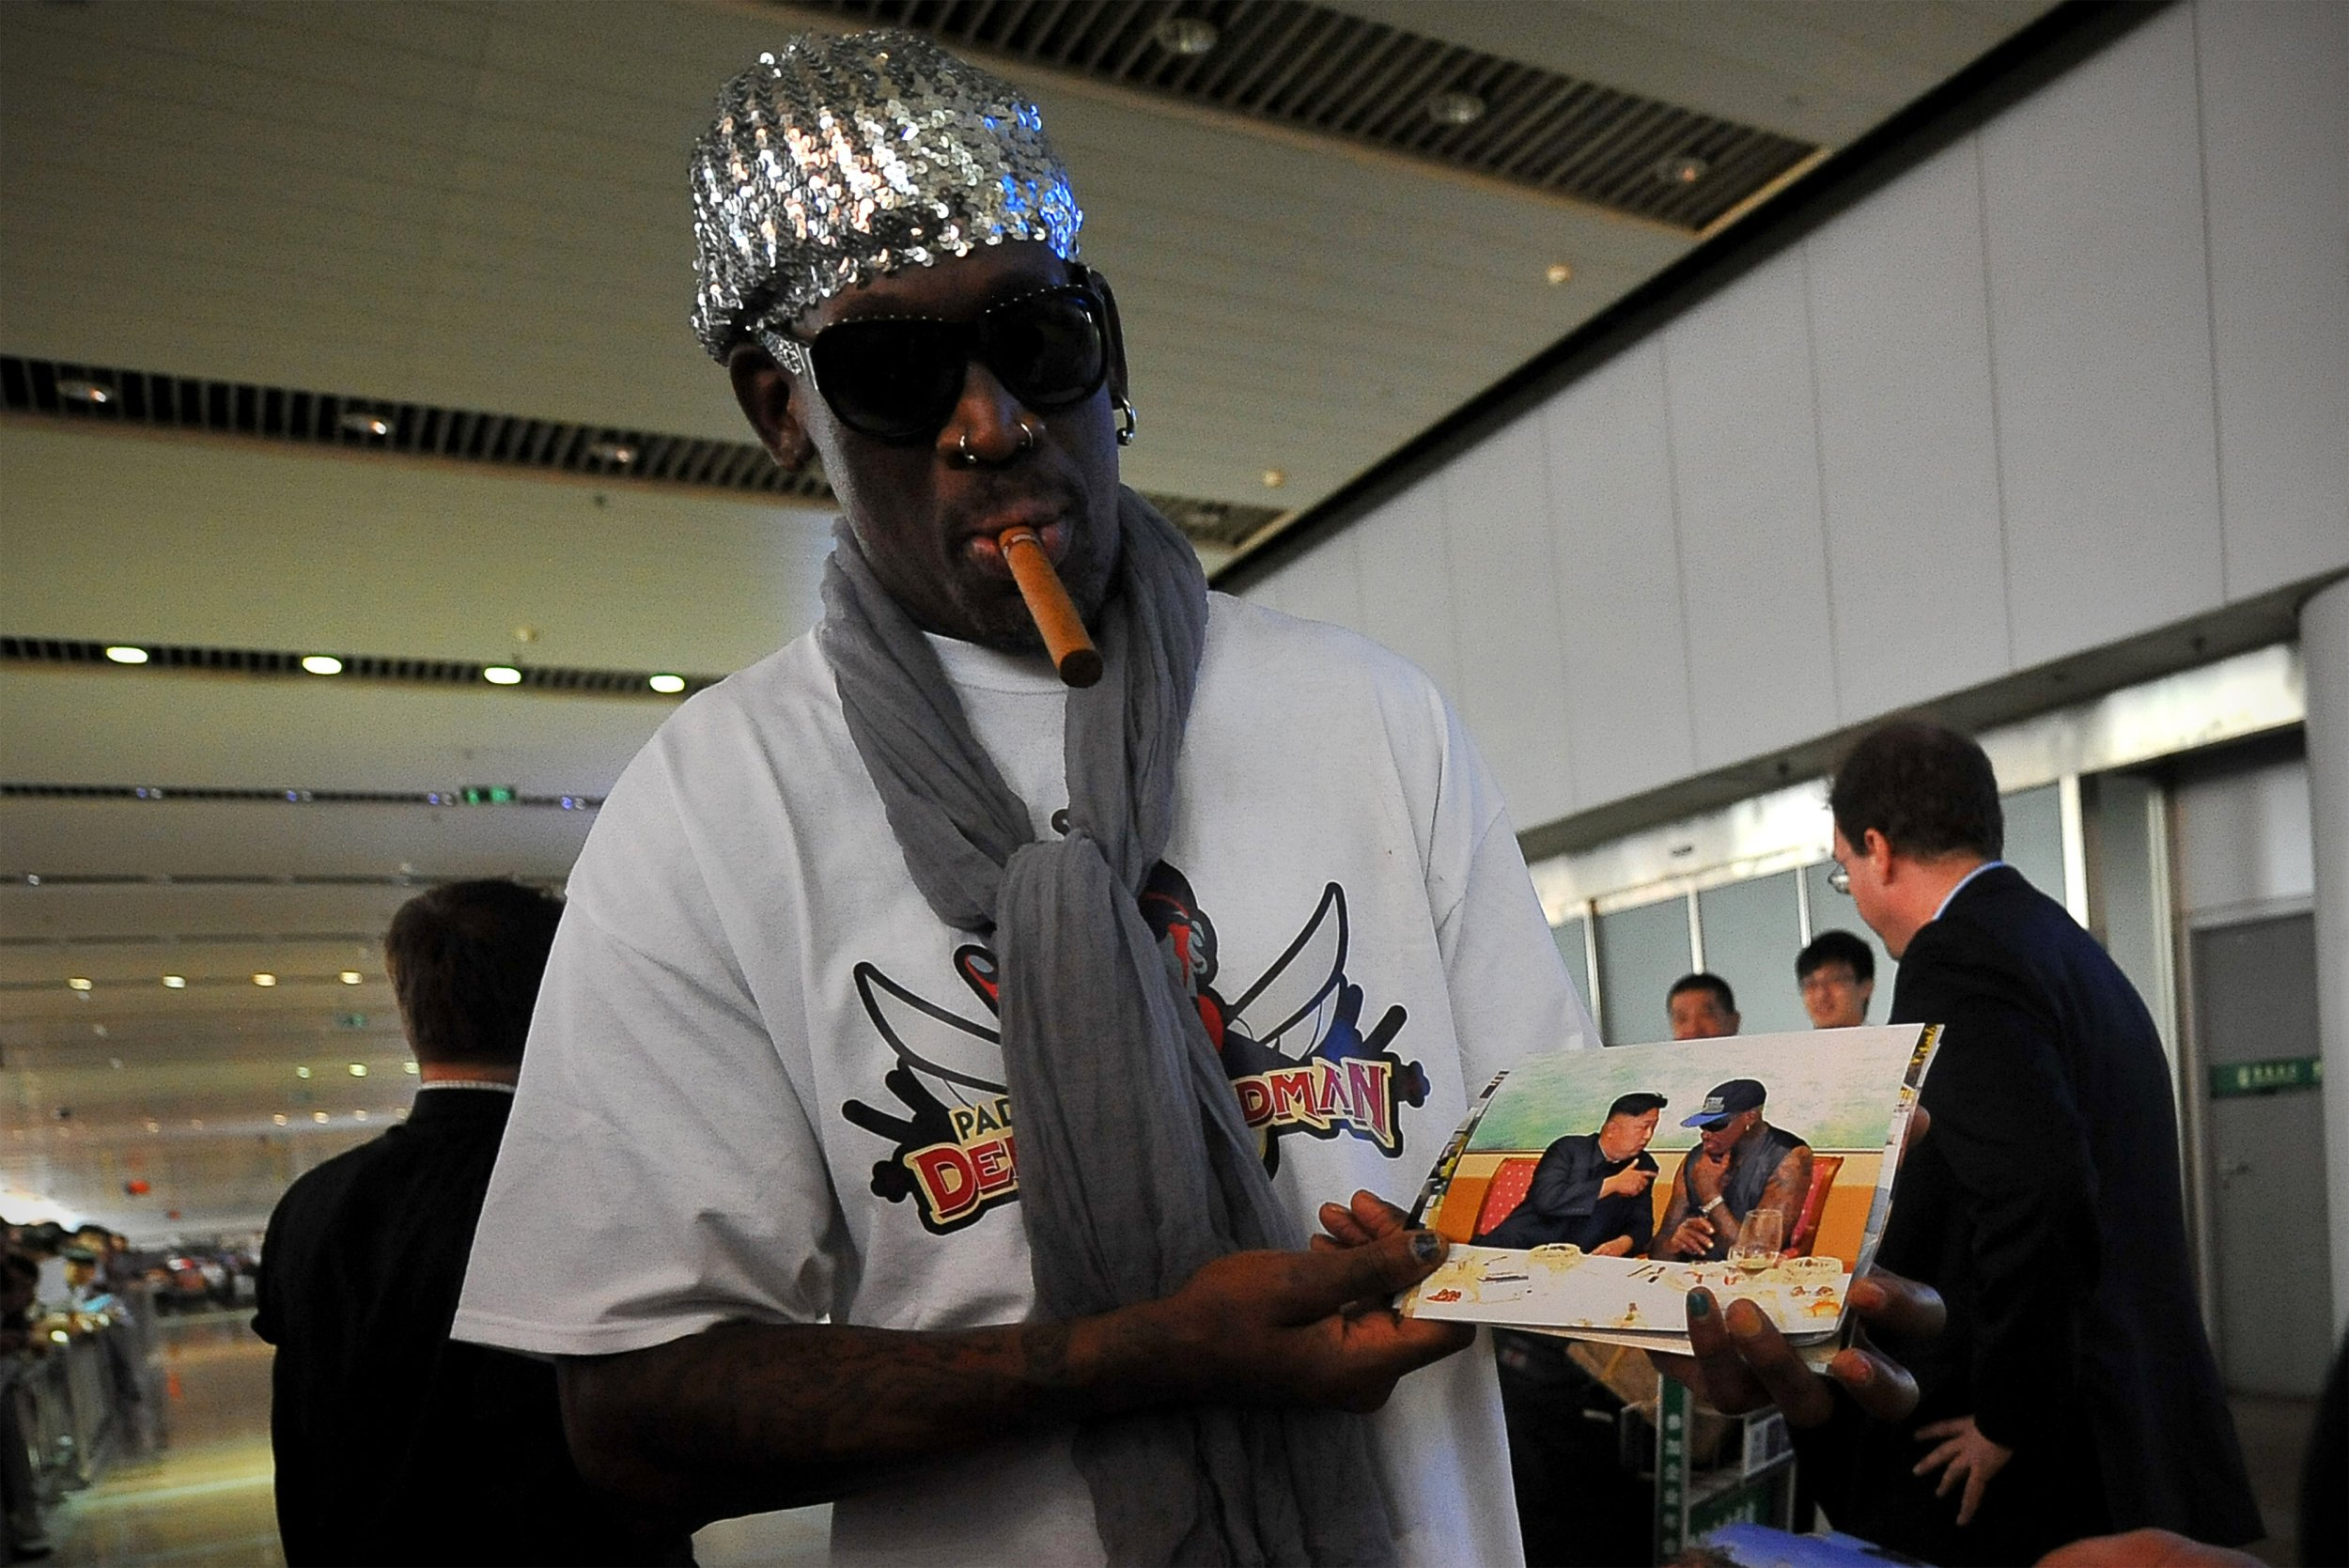 Former NBA star Dennis Rodman at Beijing International Airport, China, September 7 2013.